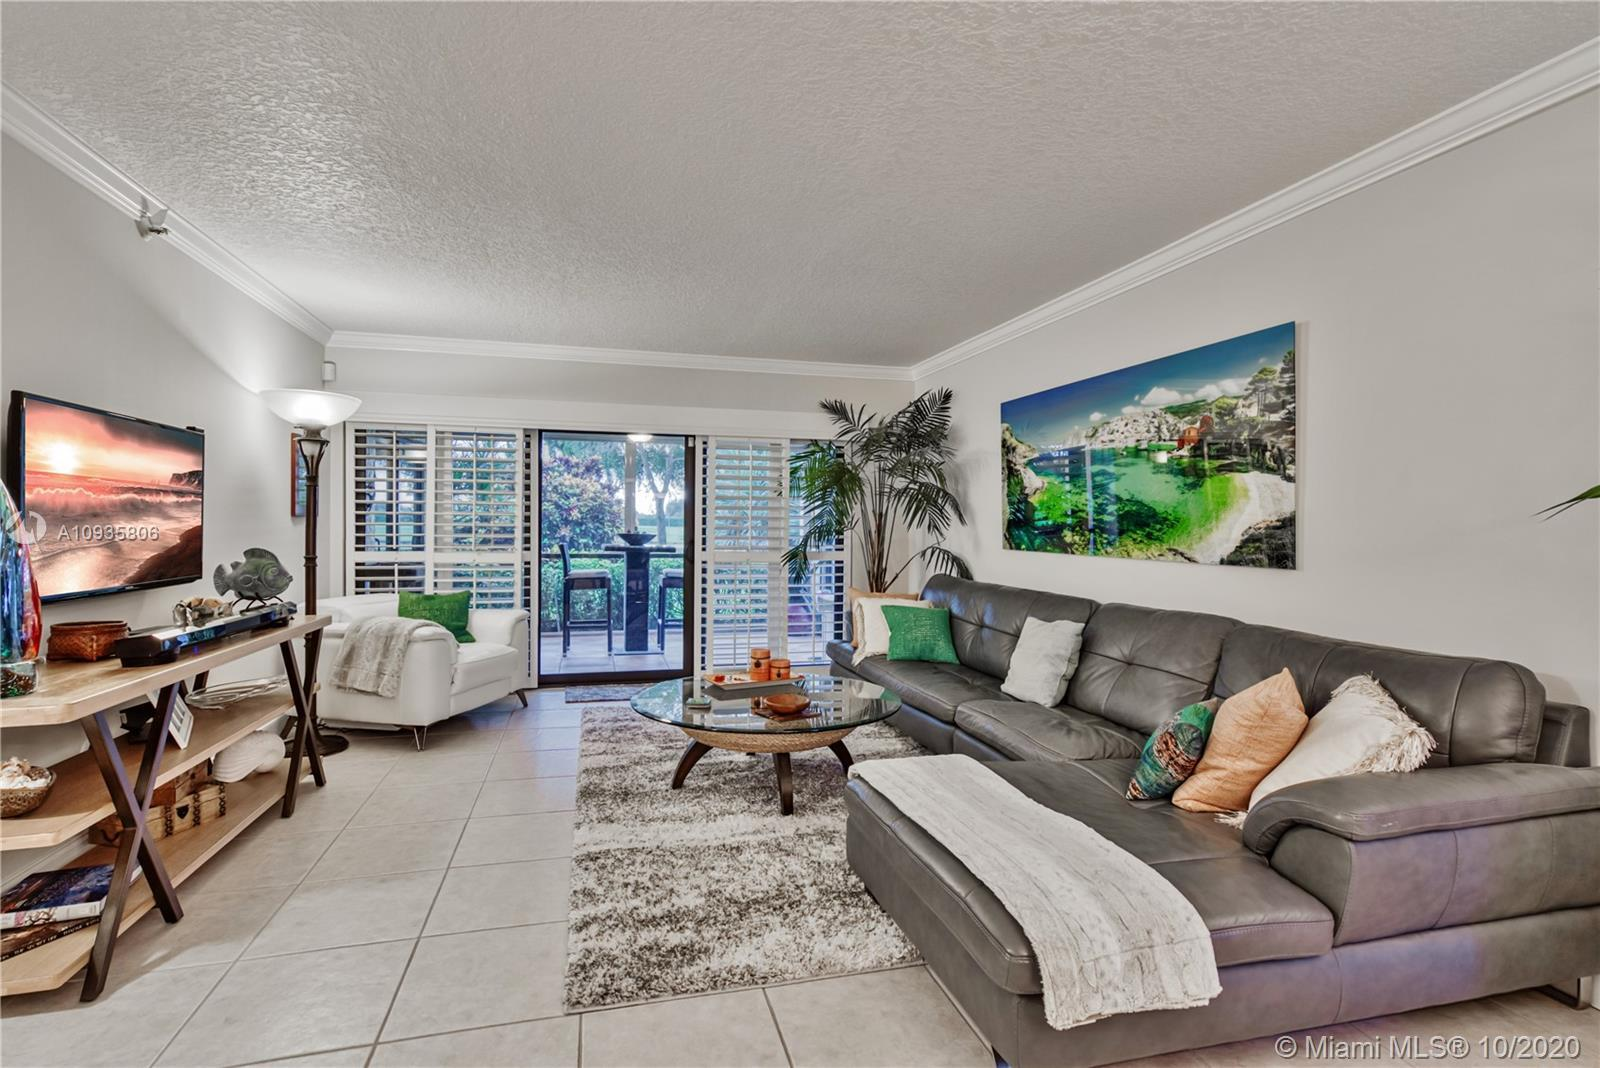 Rare and remodeled 3 bedroom 2 bath 1st floor unit at Club Royale @ Boca Del Mar steps away from the